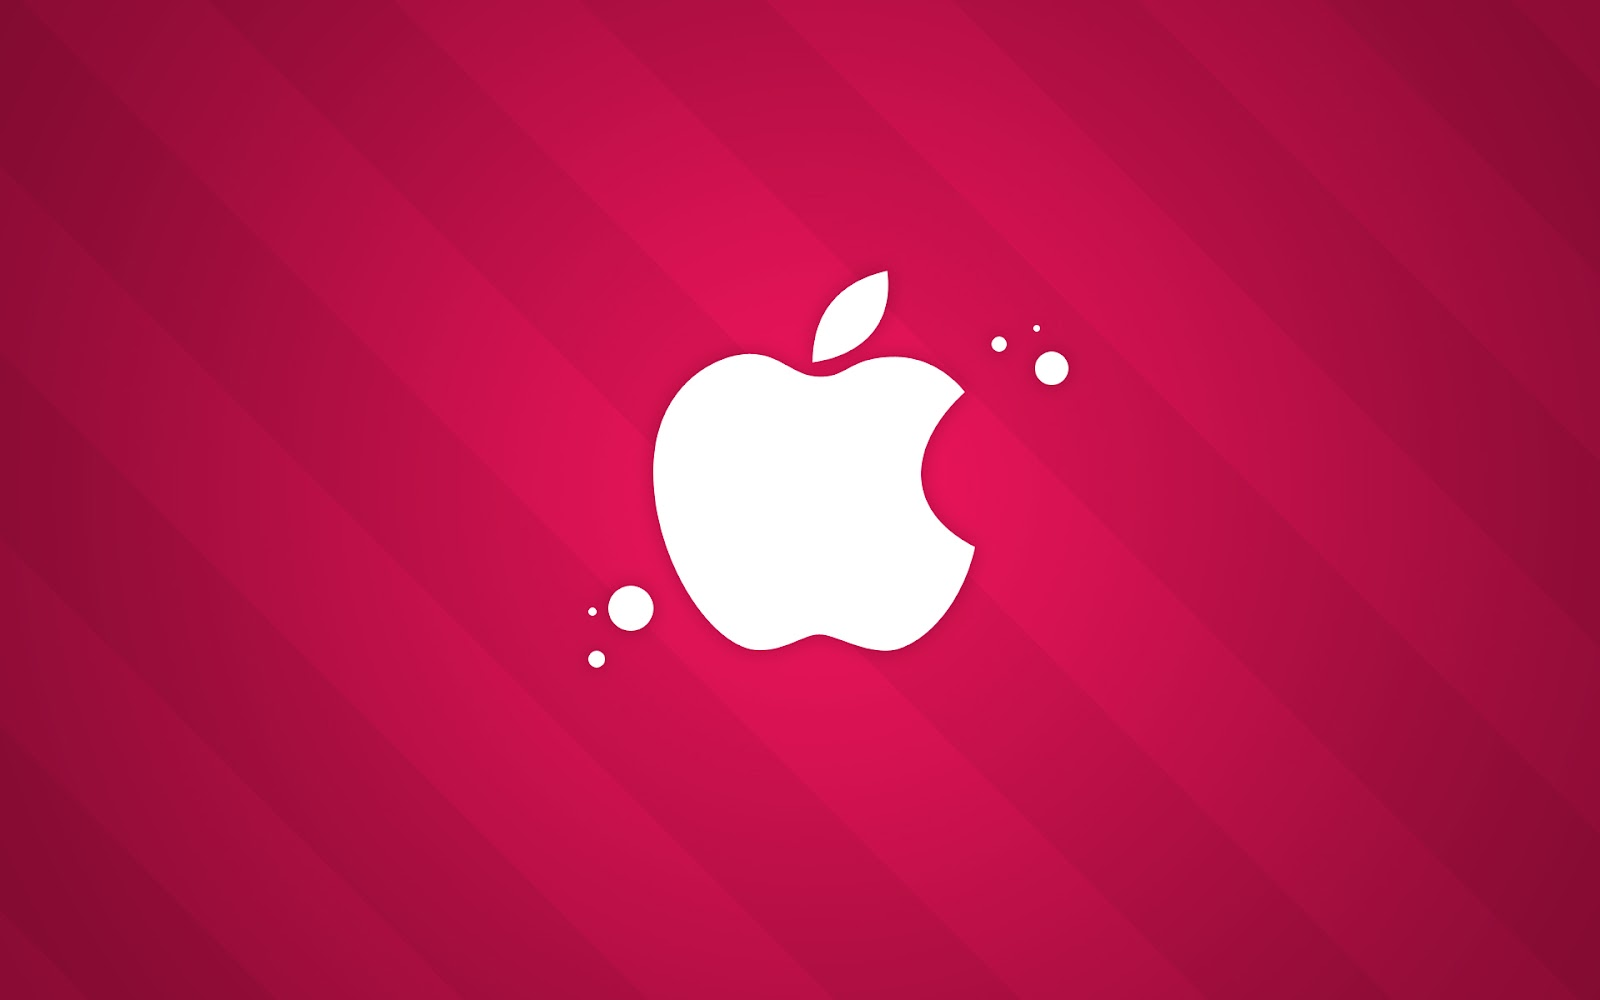 wallpaper-rosado-de-apple